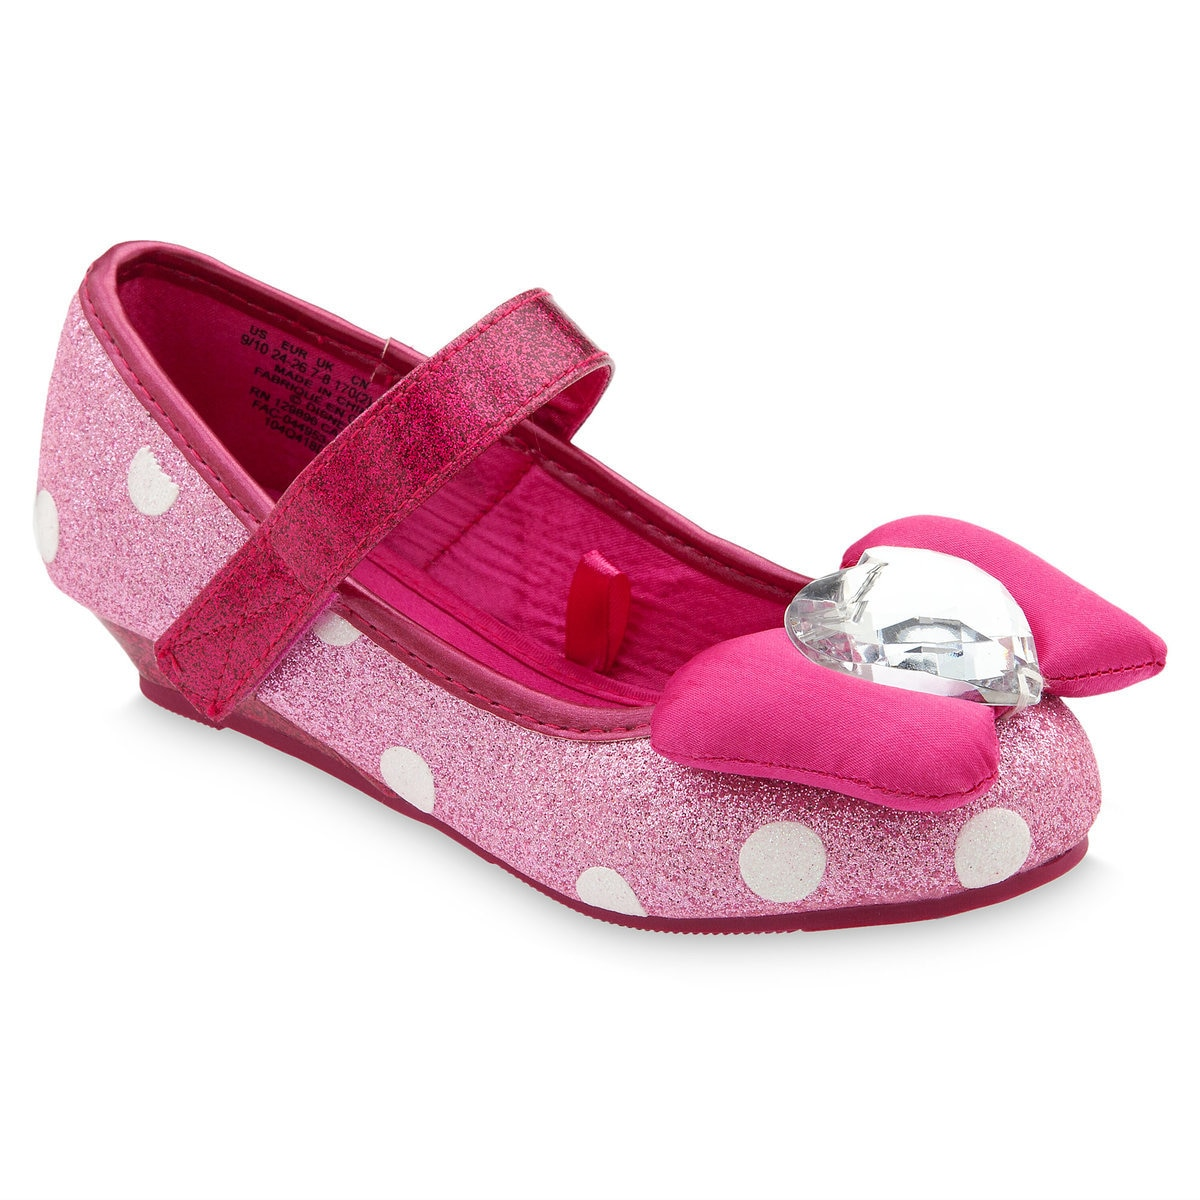 8e81fcda554 Minnie Mouse Costume Shoes for Kids - Pink